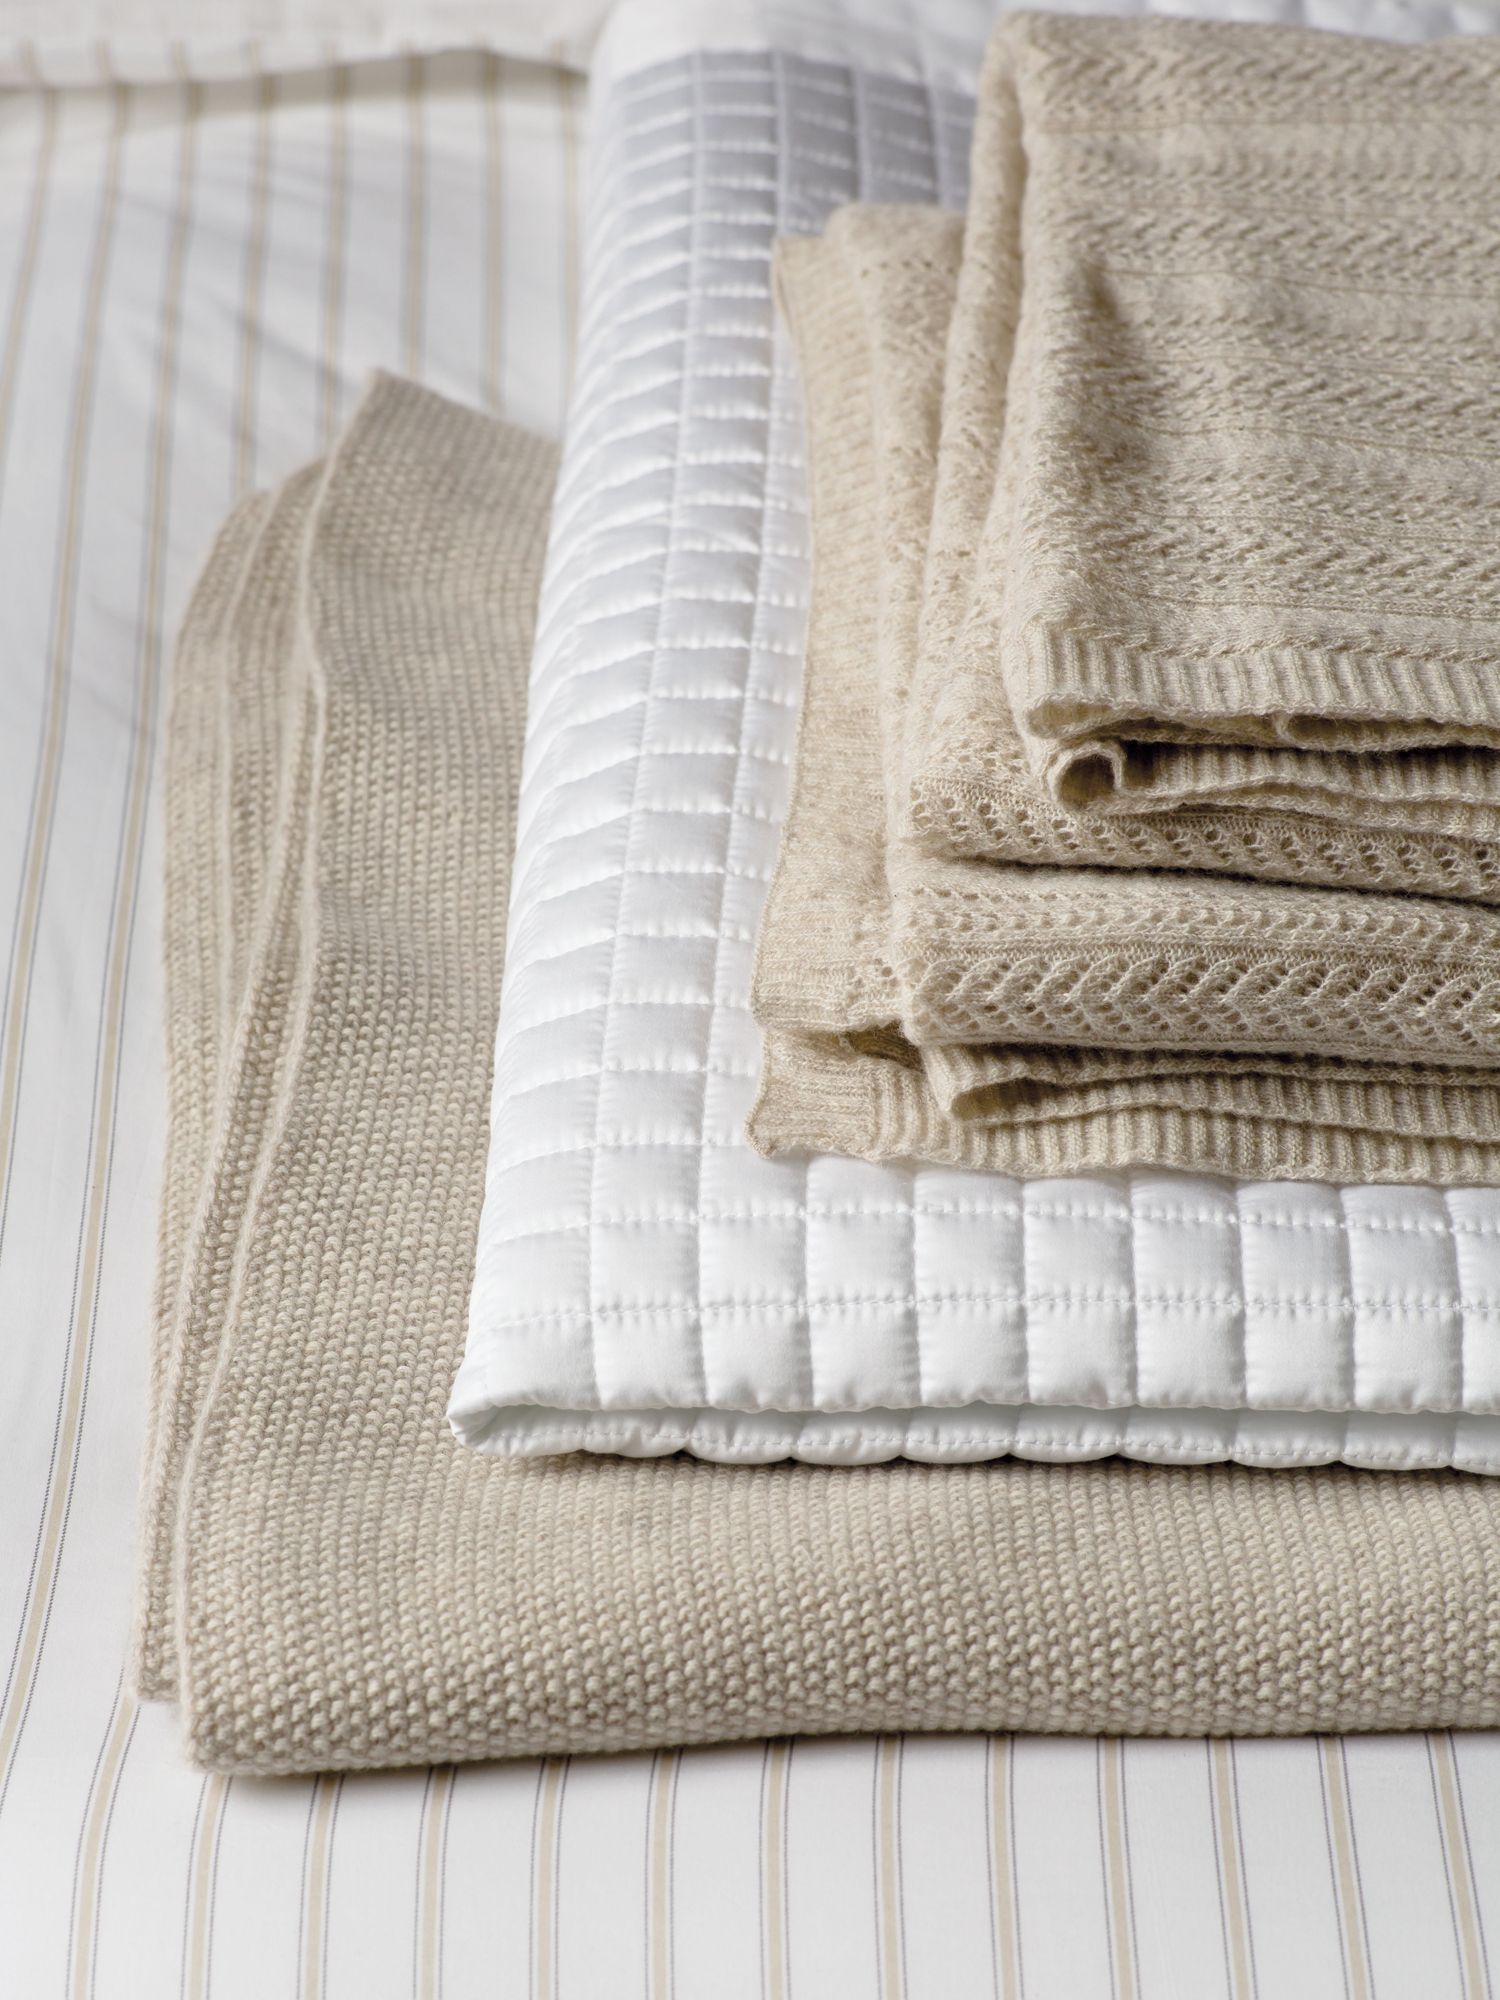 Fable Fable Merle throw 265x260cm white